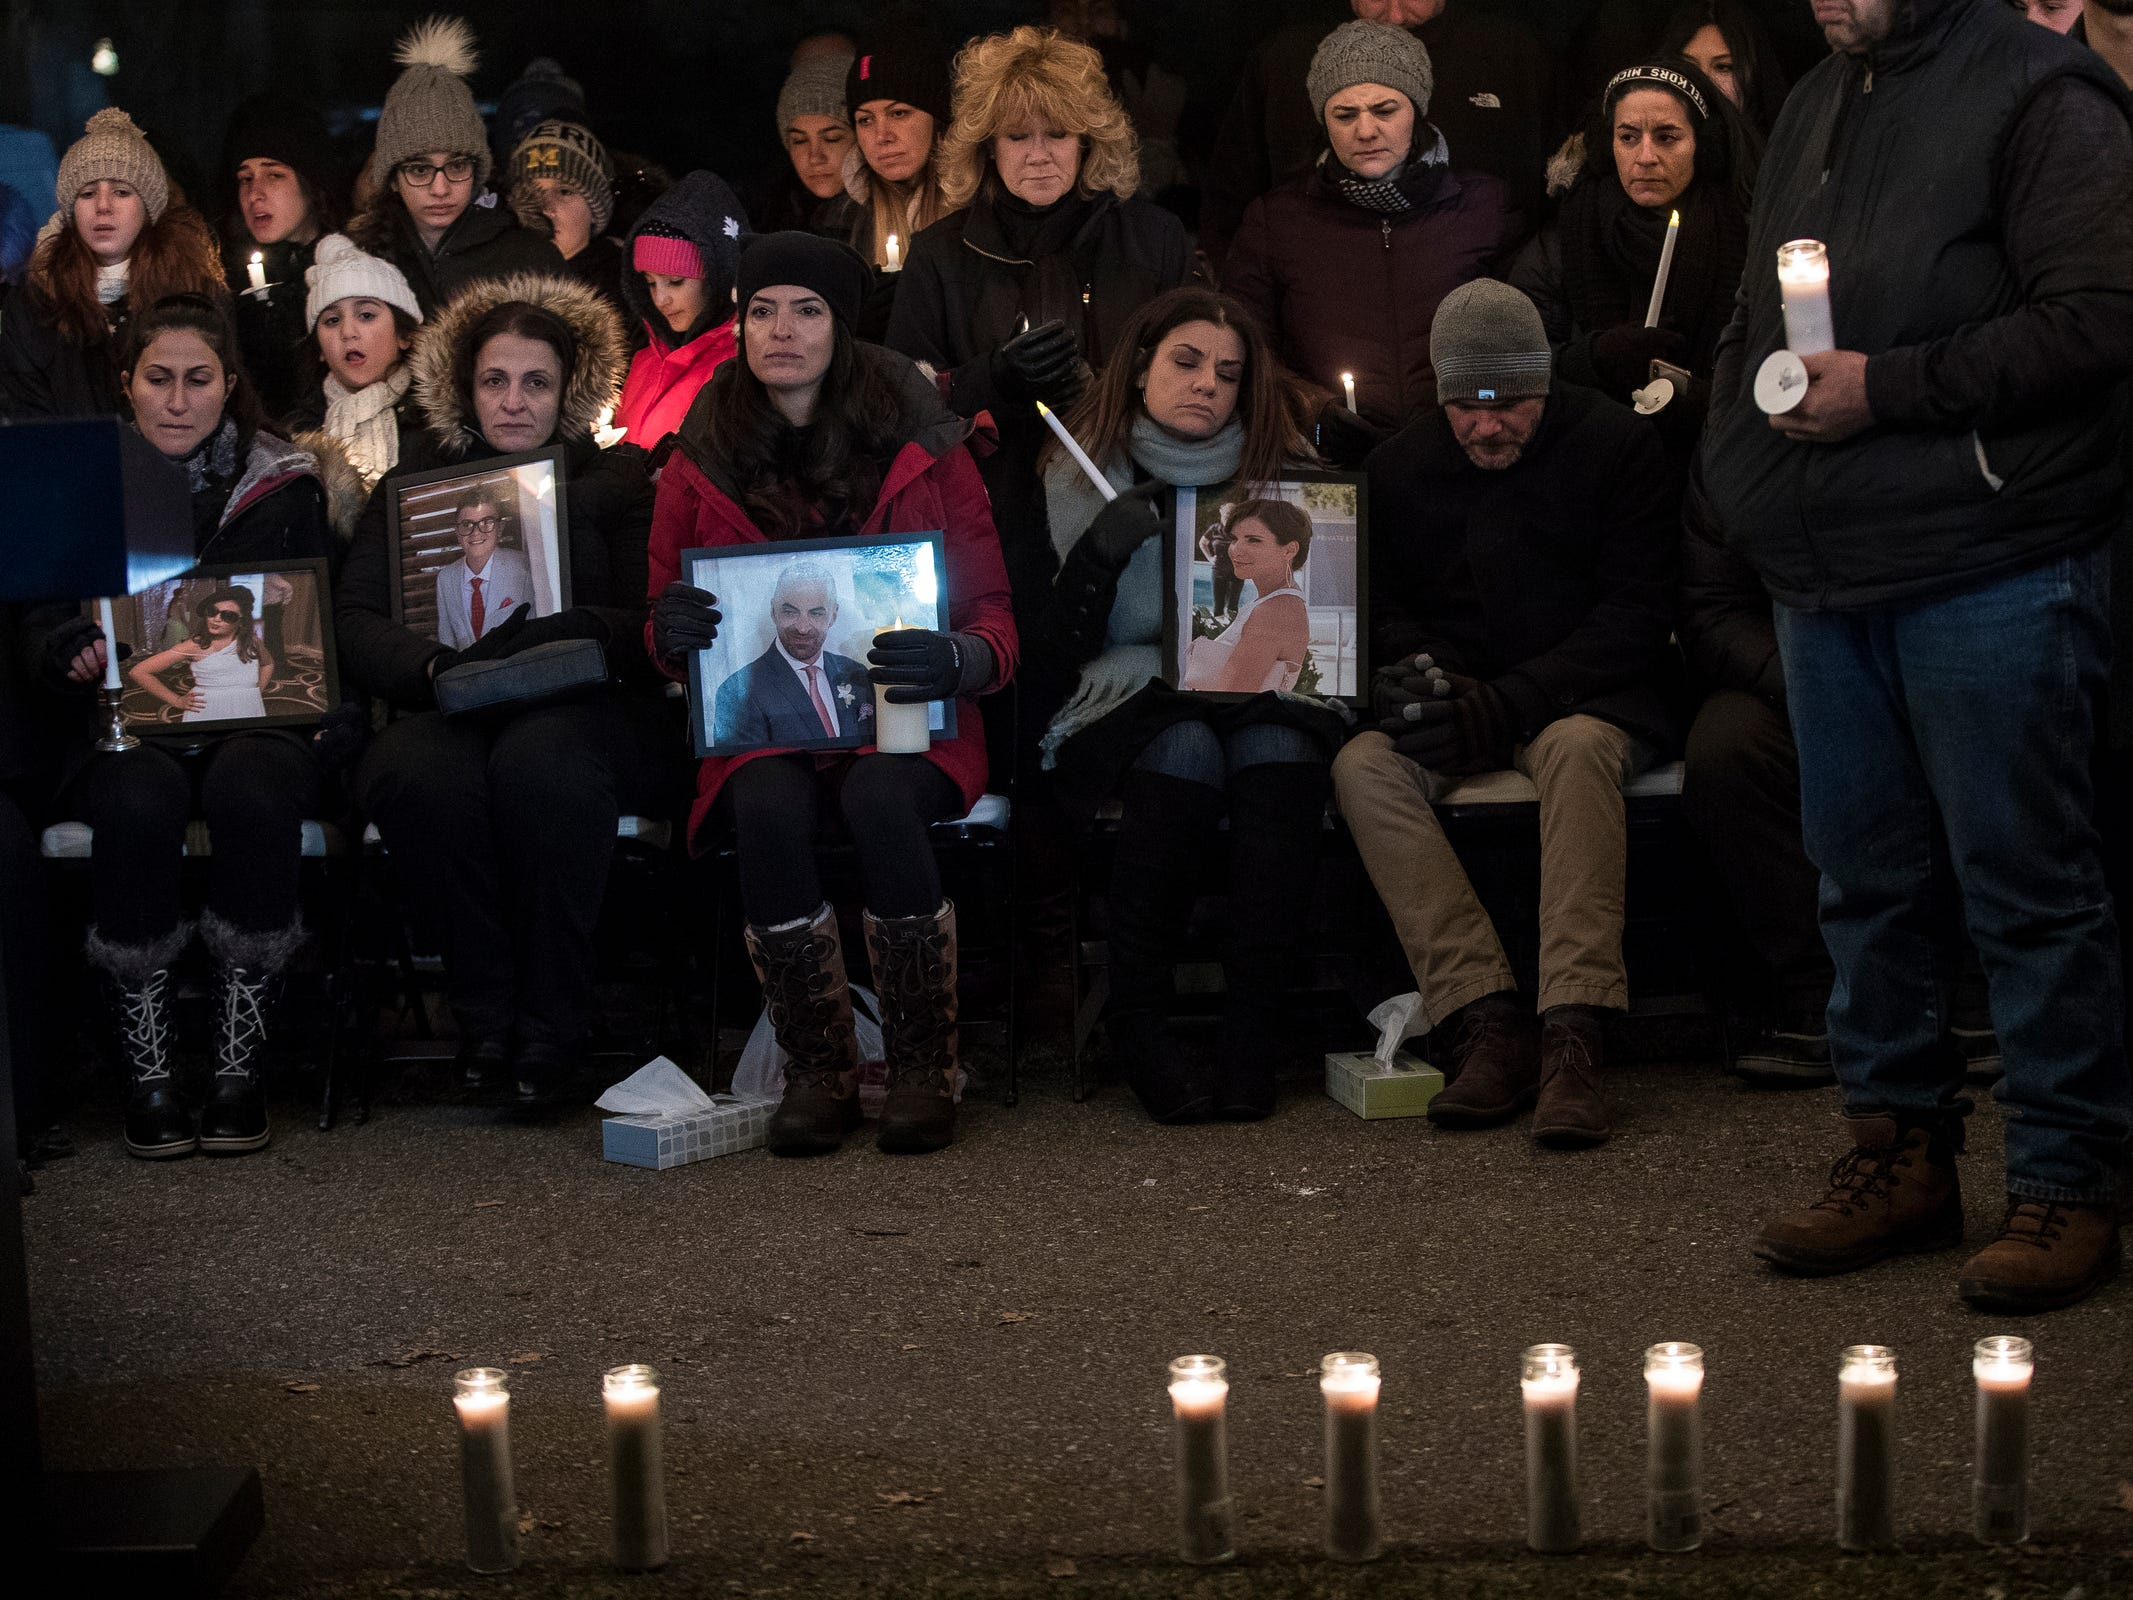 Northville community held a candlelight vigil to remember the Abbas family at the Ford Field Park in Northville Friday, Jan. 11, 2019.